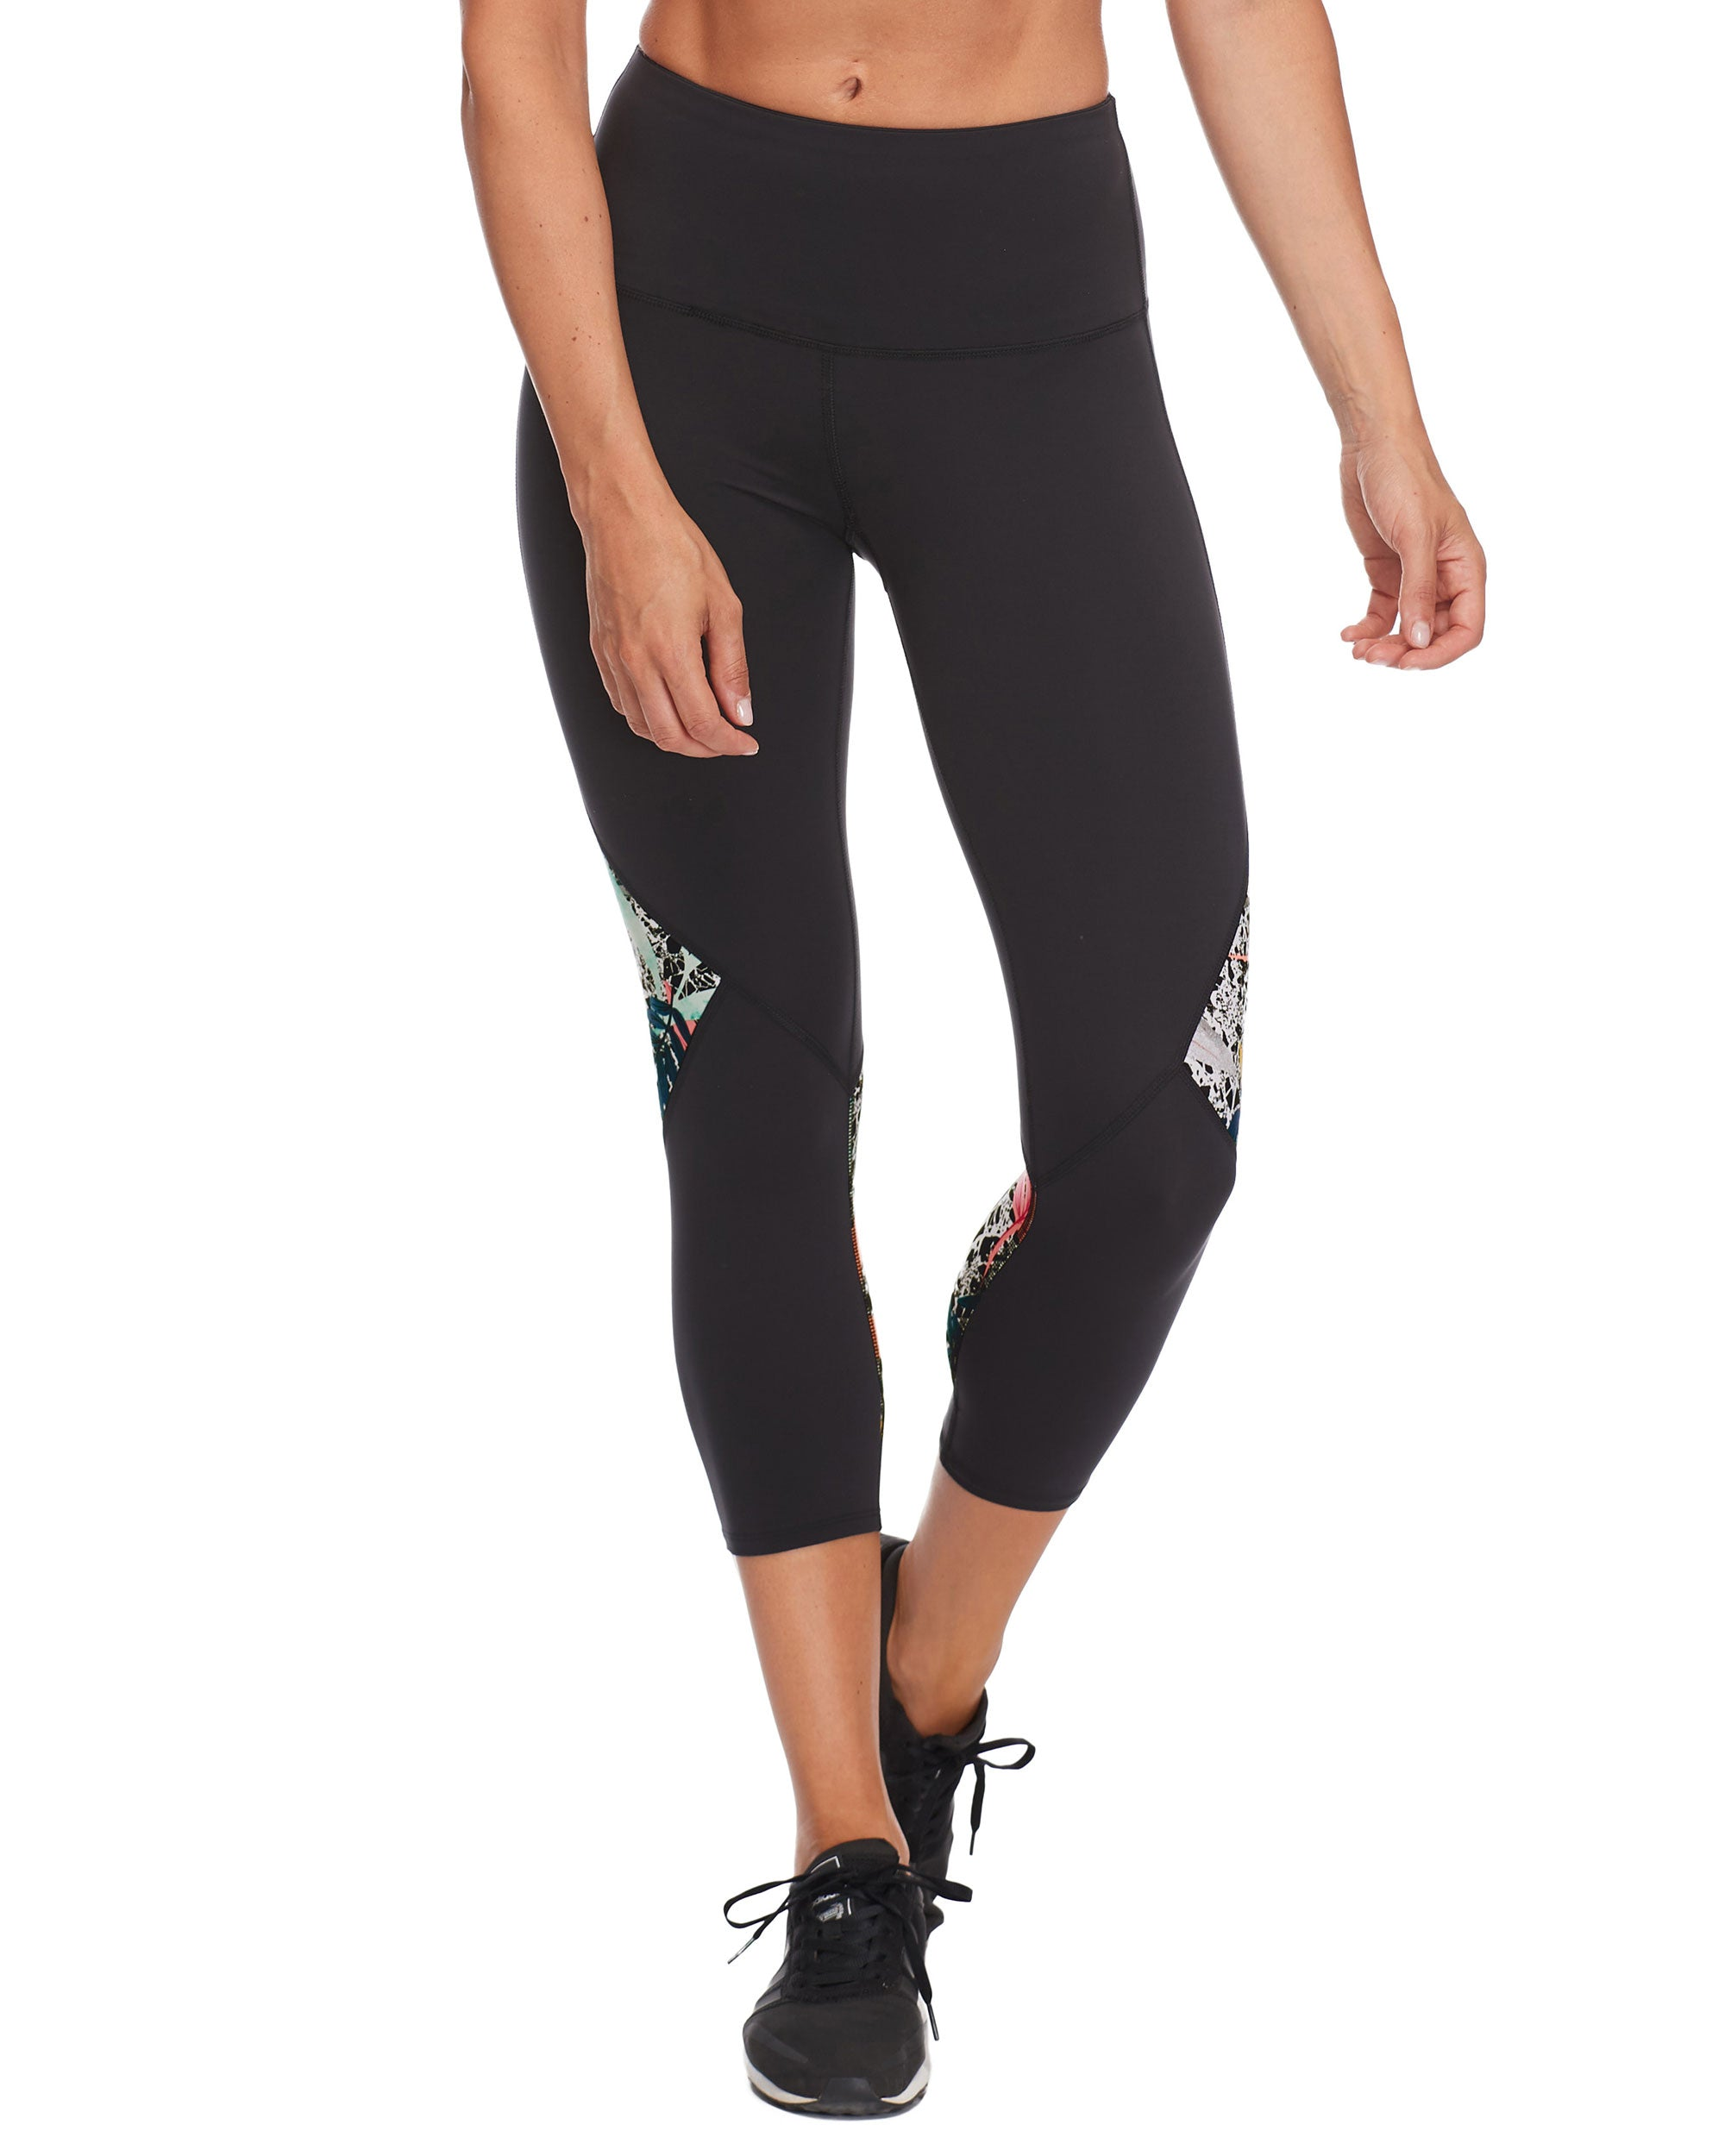 Libra Performance Capri Legging - Black